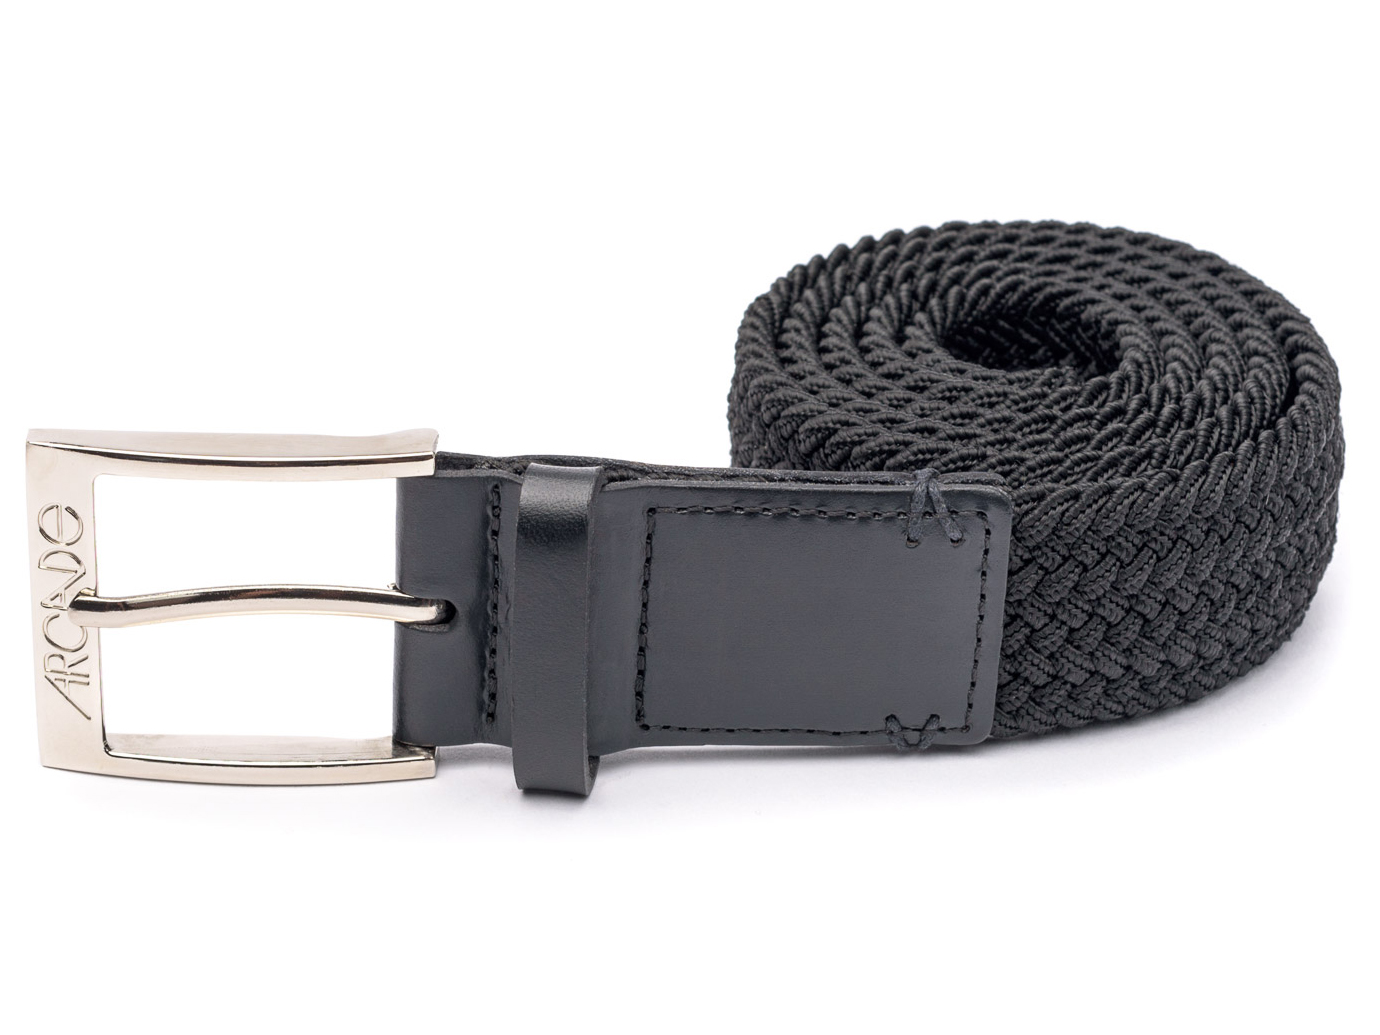 Arcade Belt Co The Hudson Belt - Black - S/M